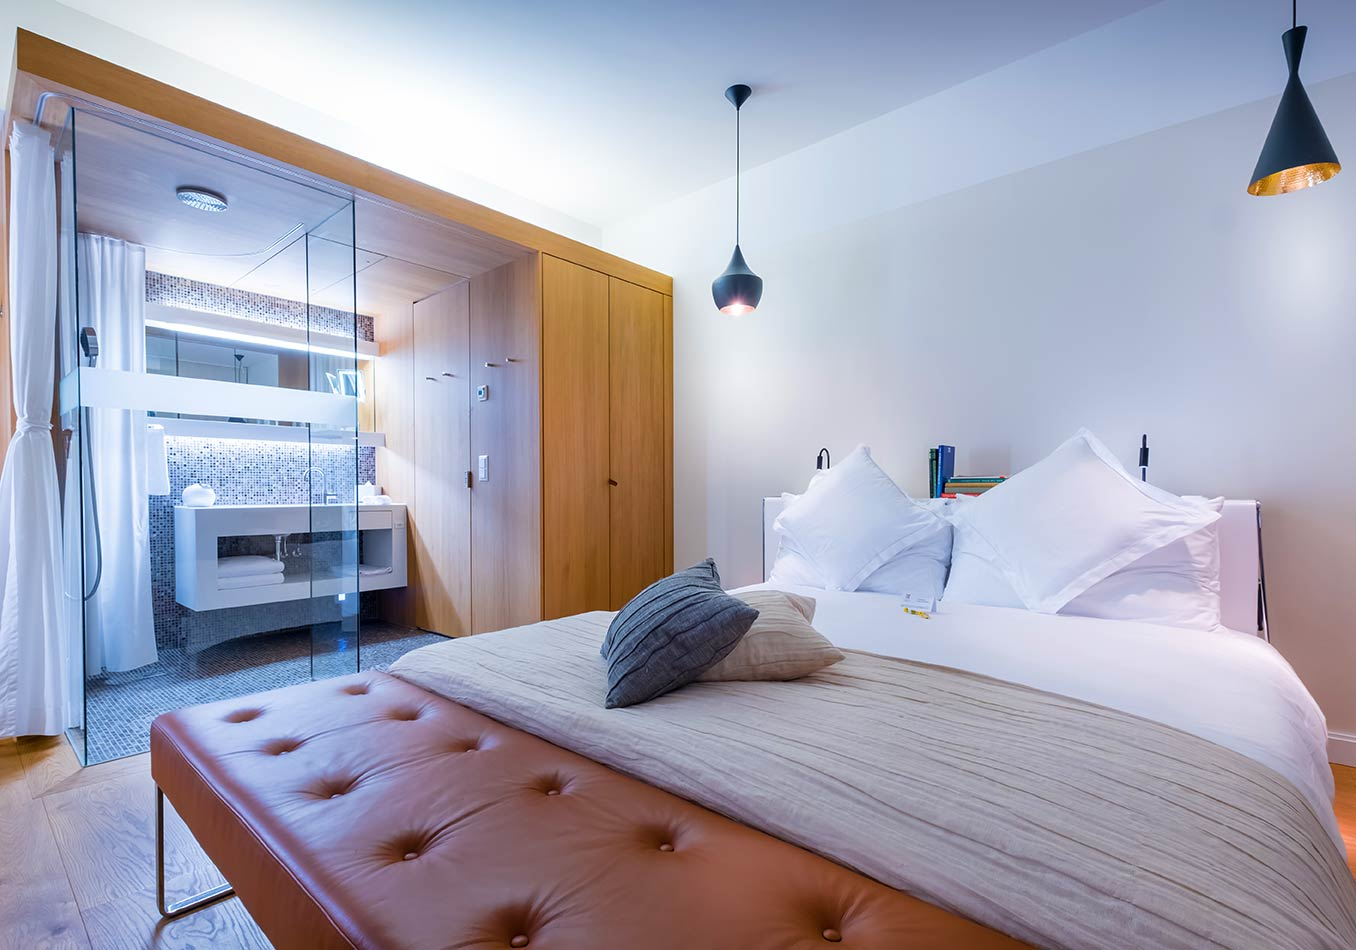 Room B2 Boutique Hotel and Spa Zurich